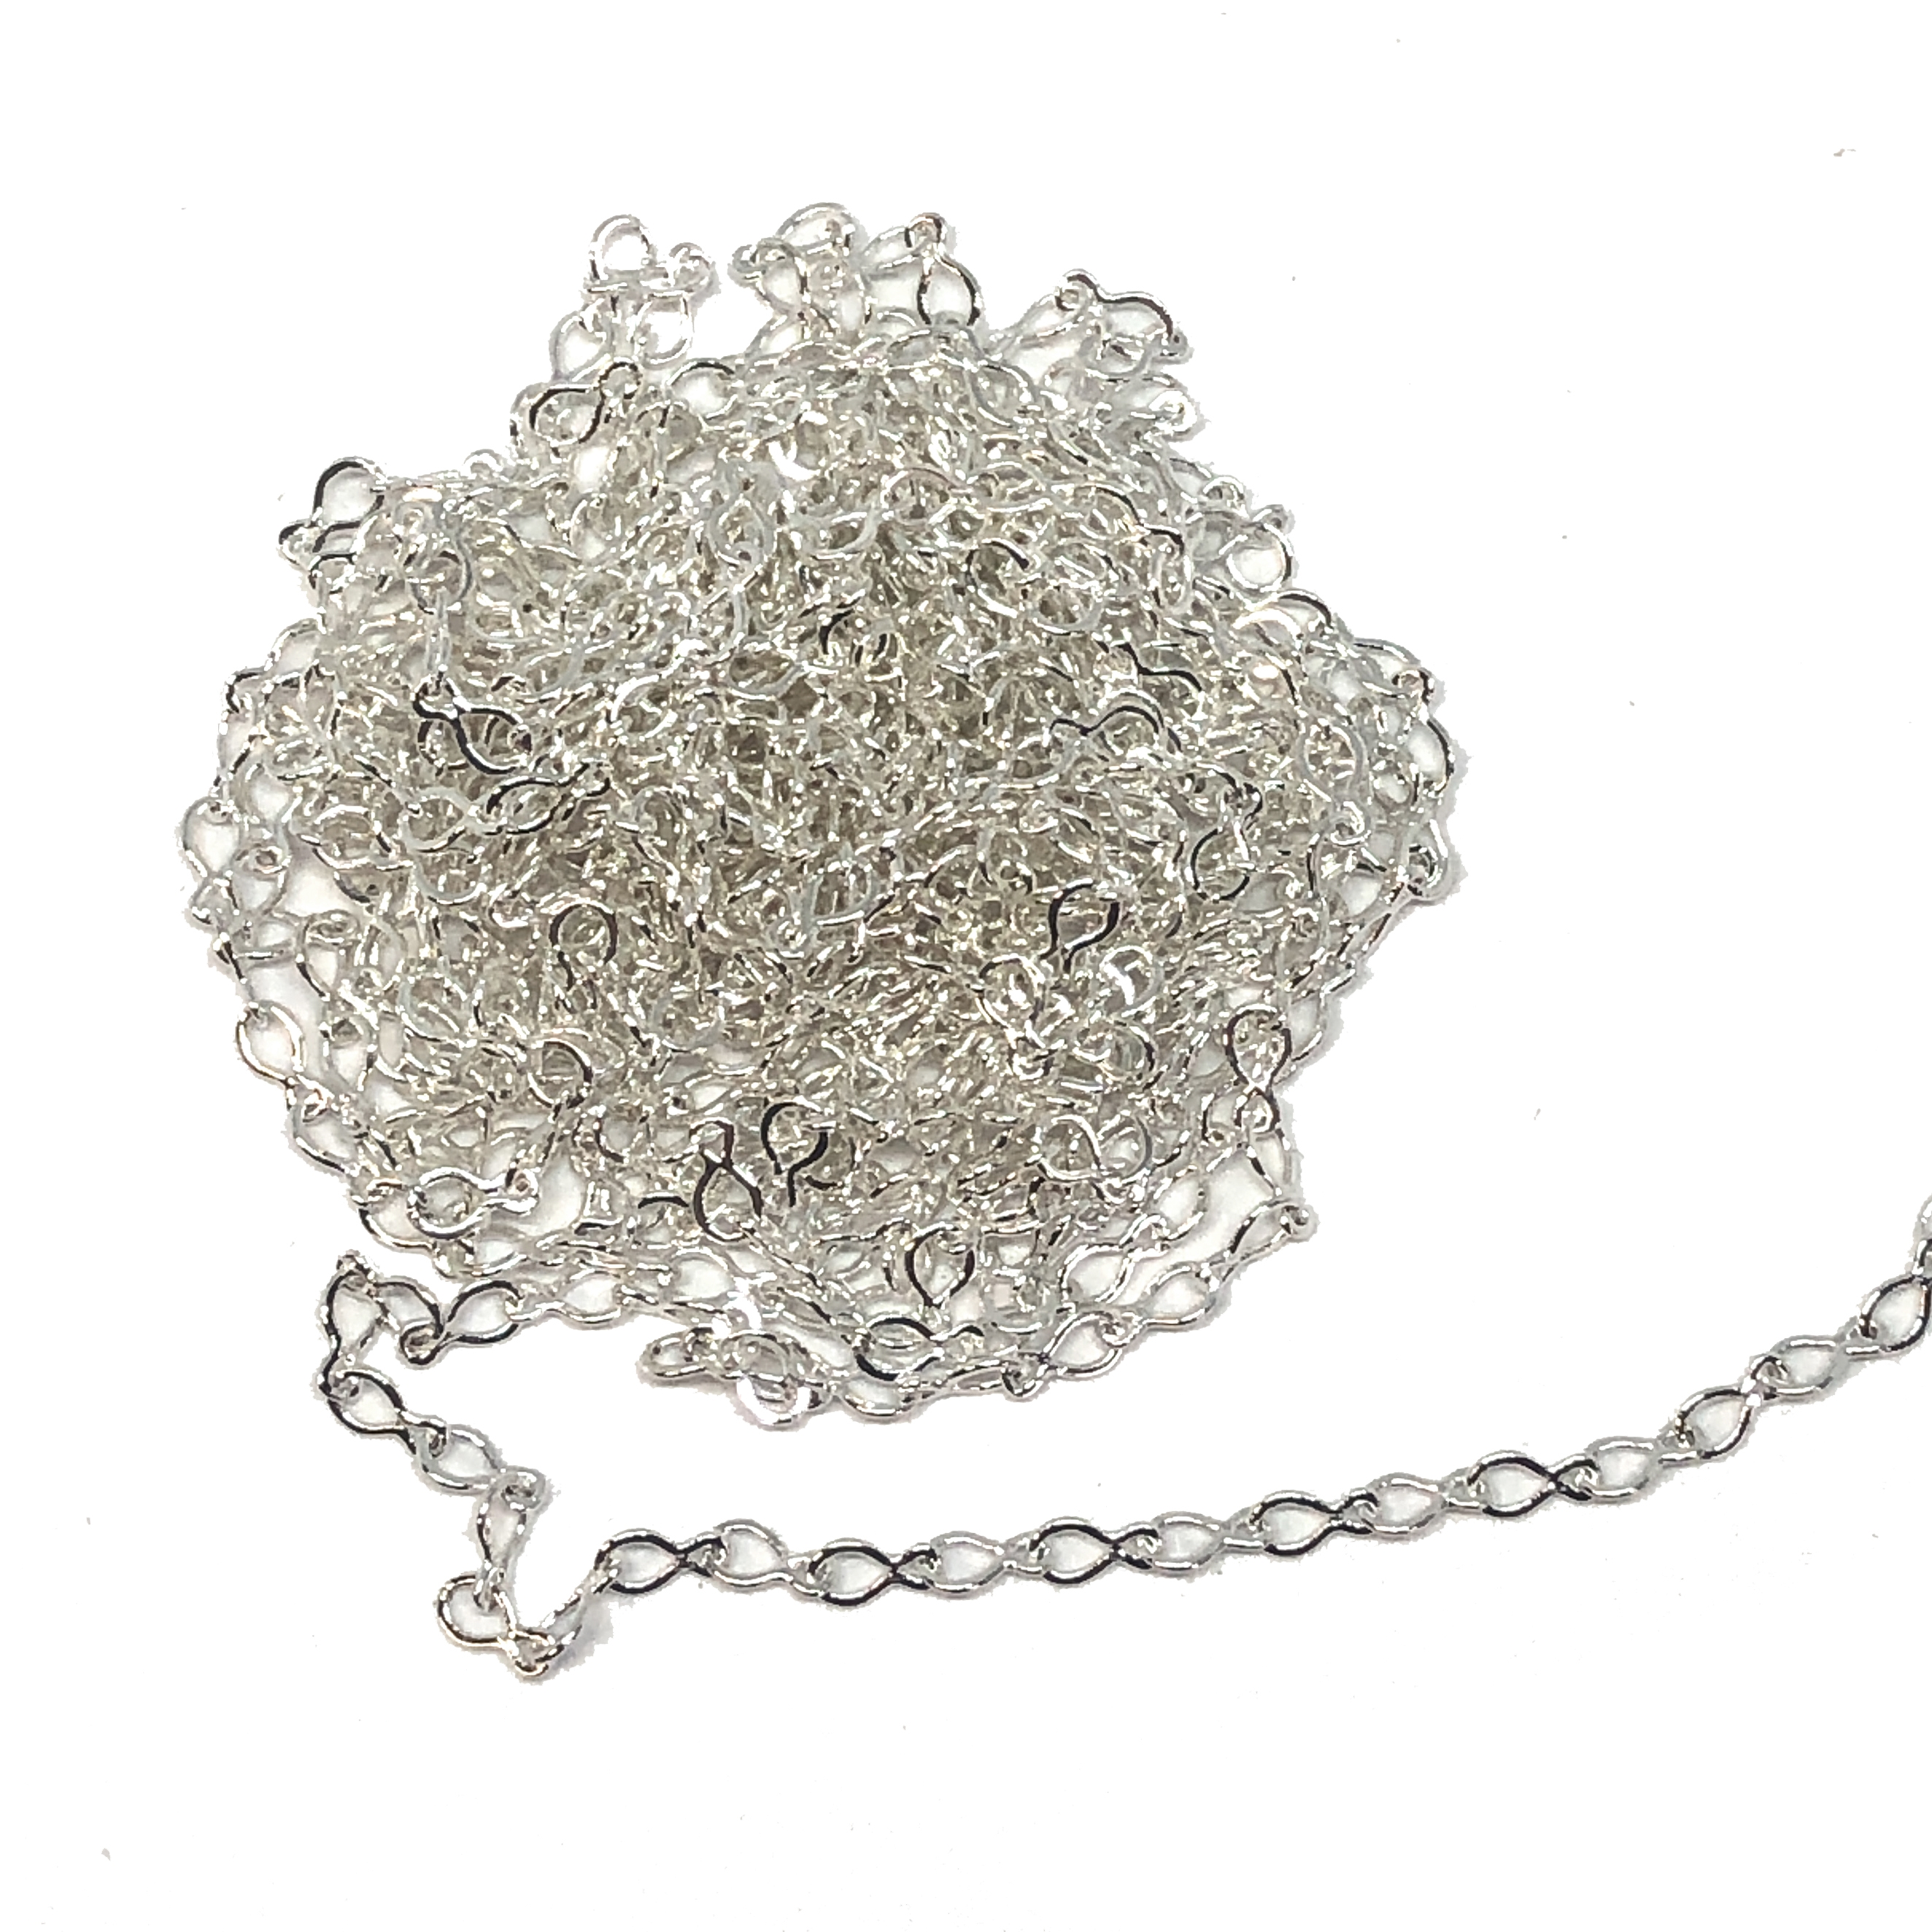 silver link chain, delicate, 09354, dainty chain, silver plated, link chain, teardrop links, nickel free, B'sue Boutiques, jewelry supplies, chain